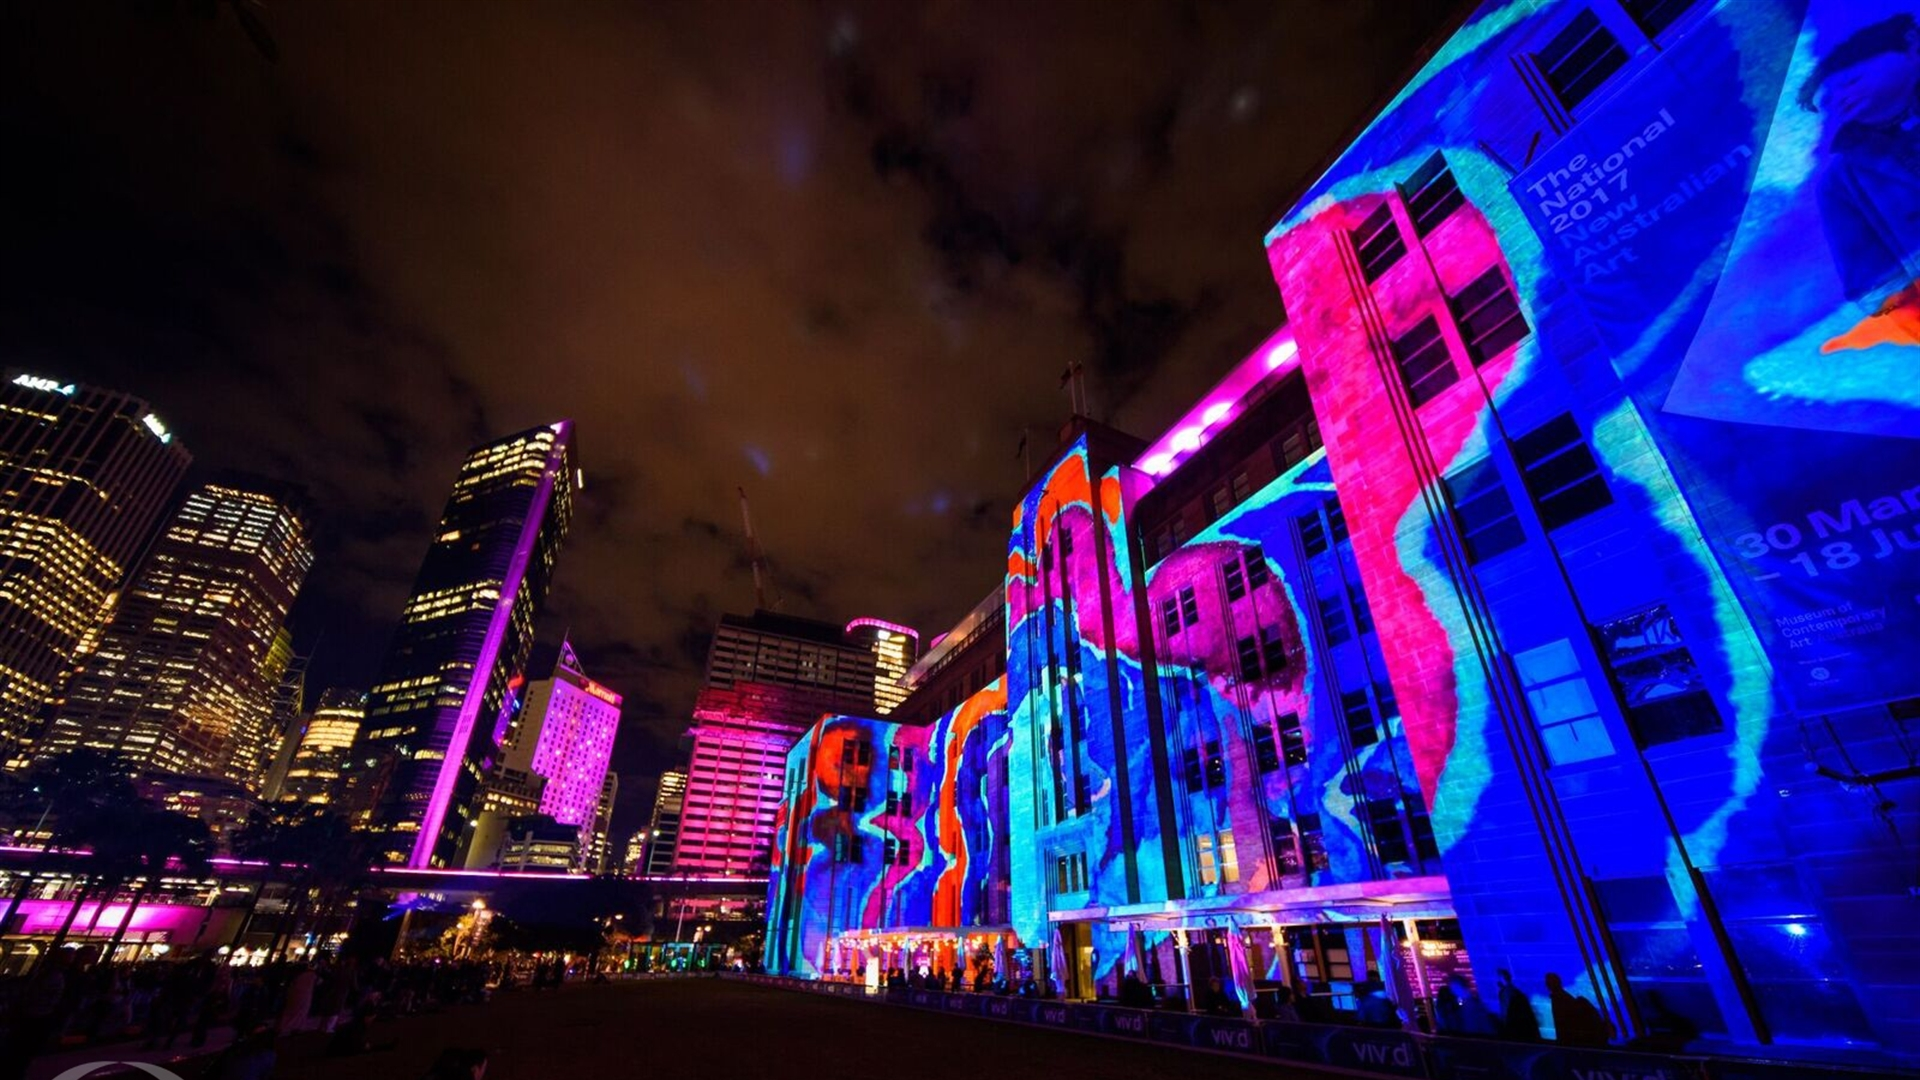 AUSTRALIA For the seventh consecutive year Technical Direction Company (TDC) has provided solutions for Vivid Sydney and this year deployed. & provides Vivid projection azcodes.com